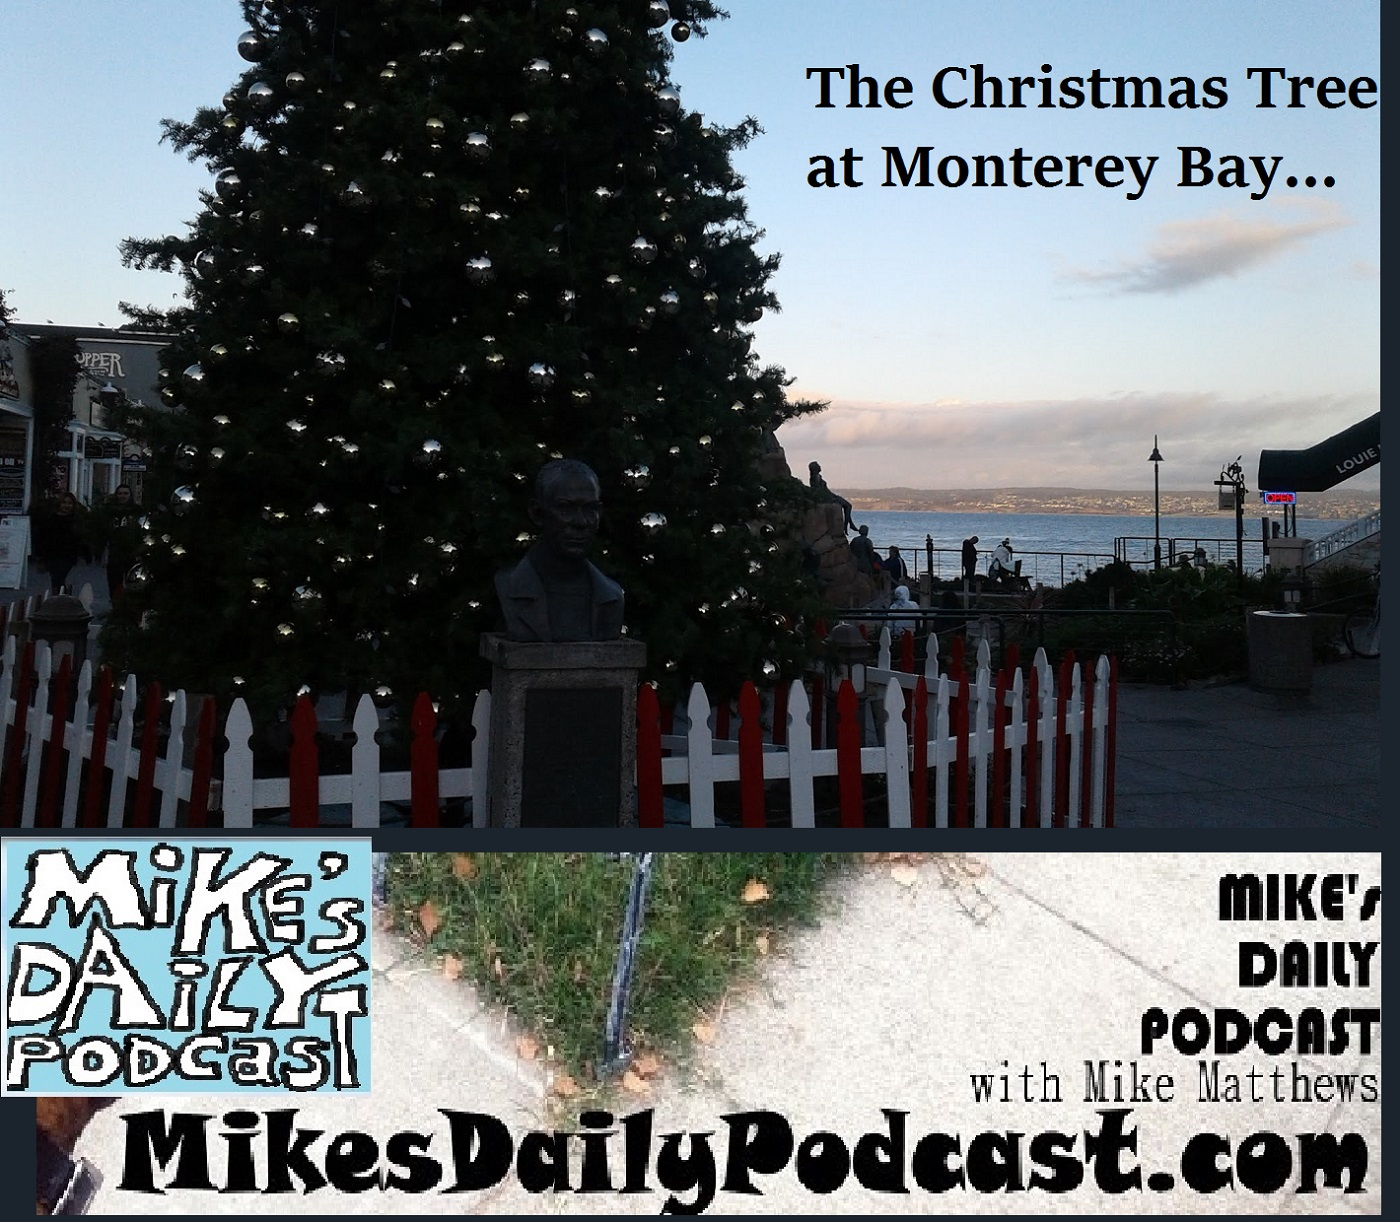 mikes-daily-podcast-1225-monterey-bay-christmas-tree